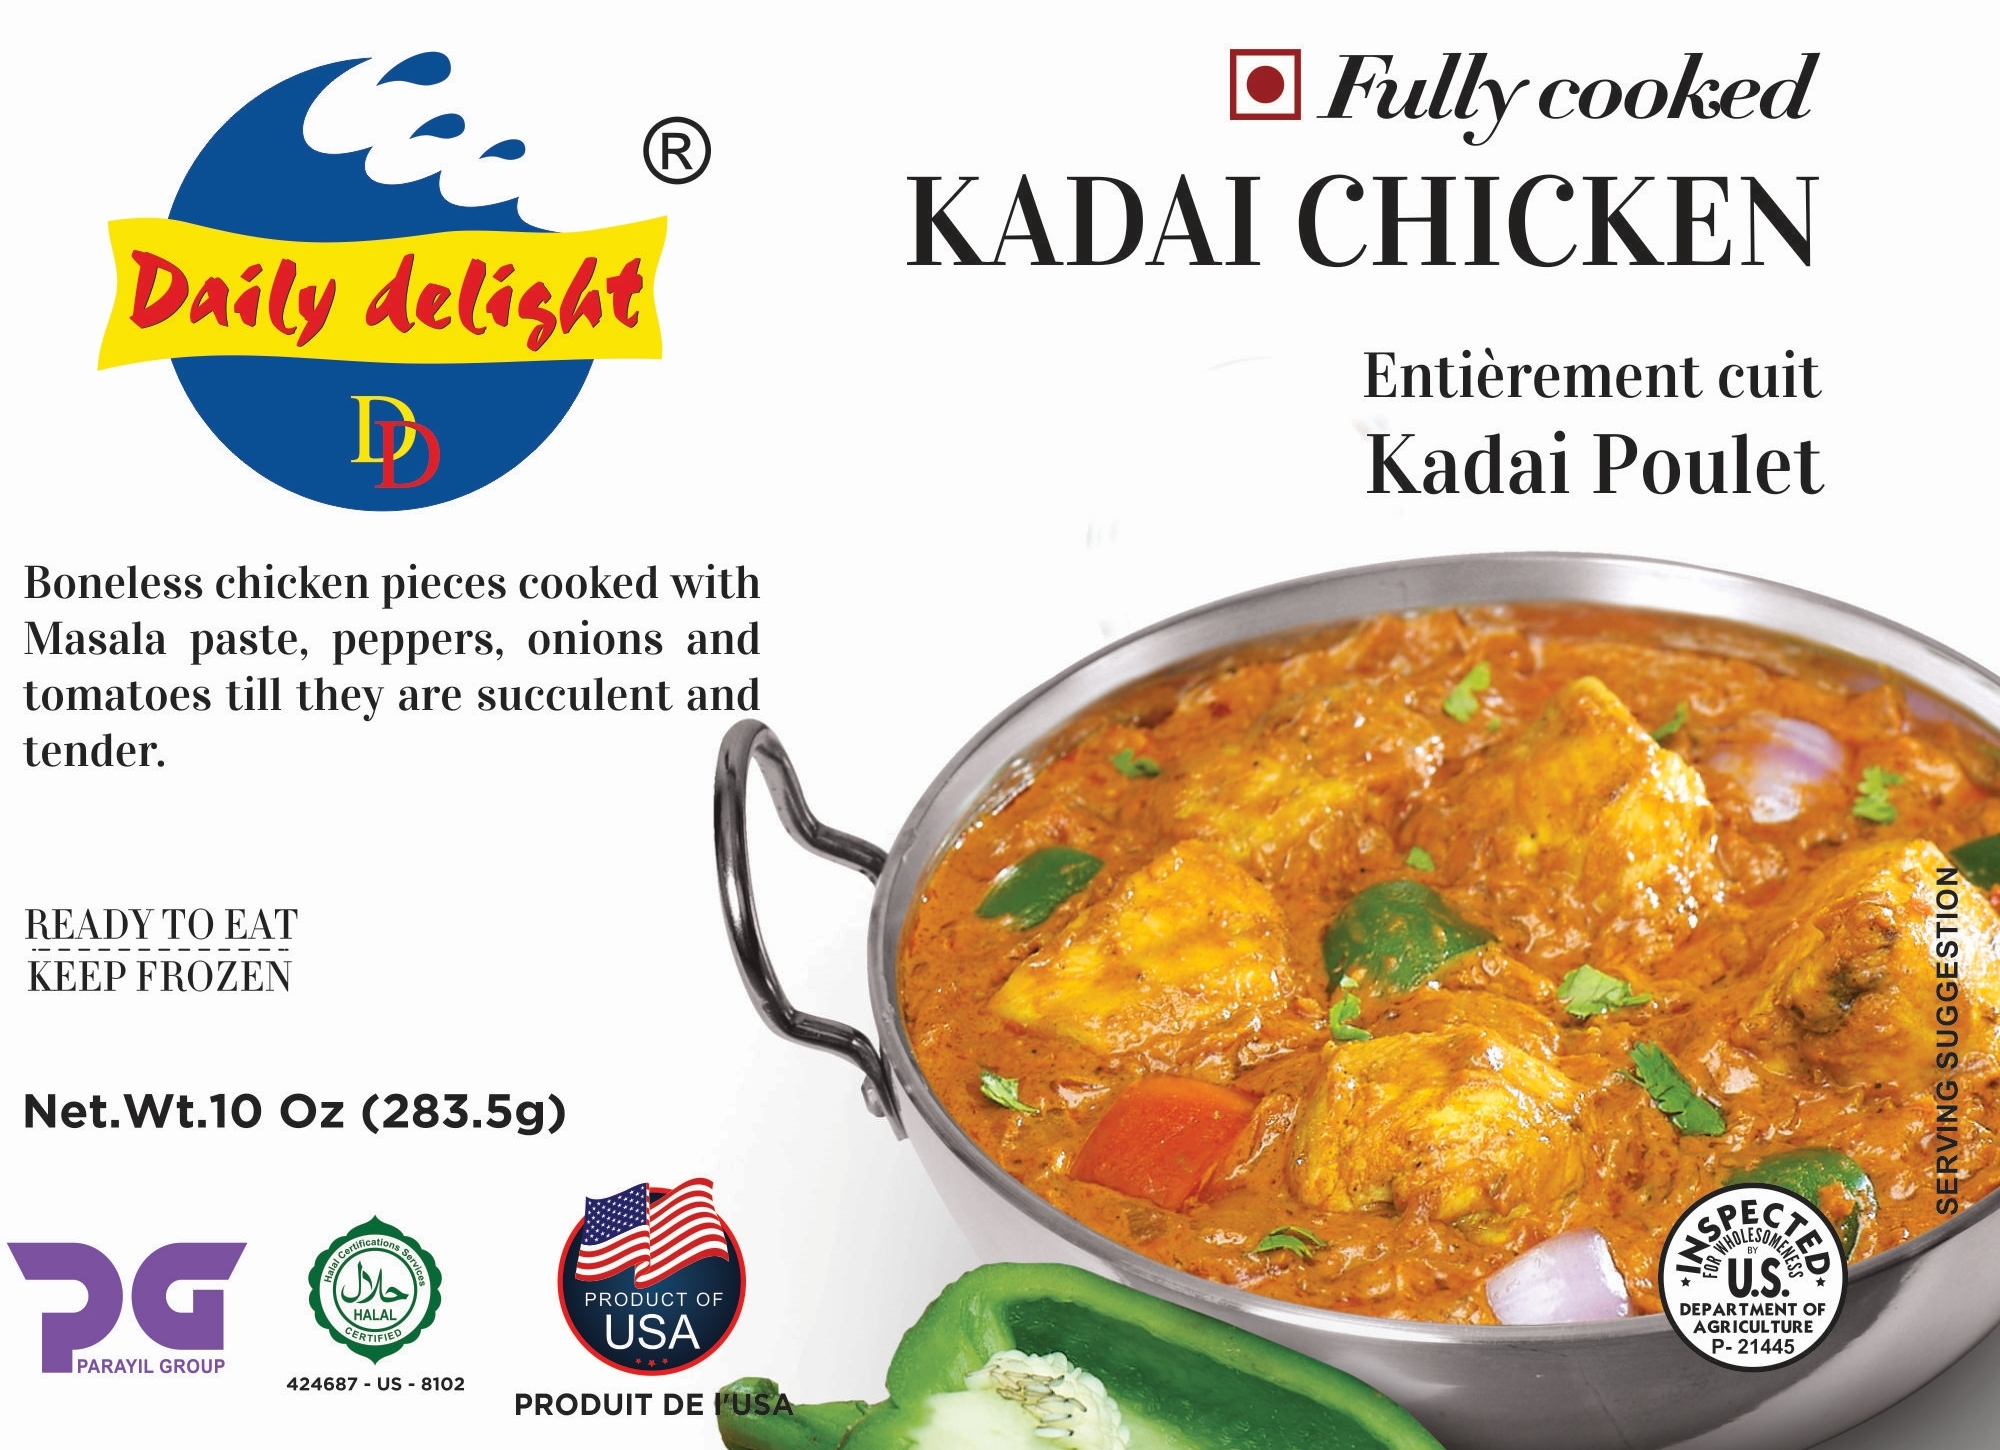 Daily Delight Kadai Chicken